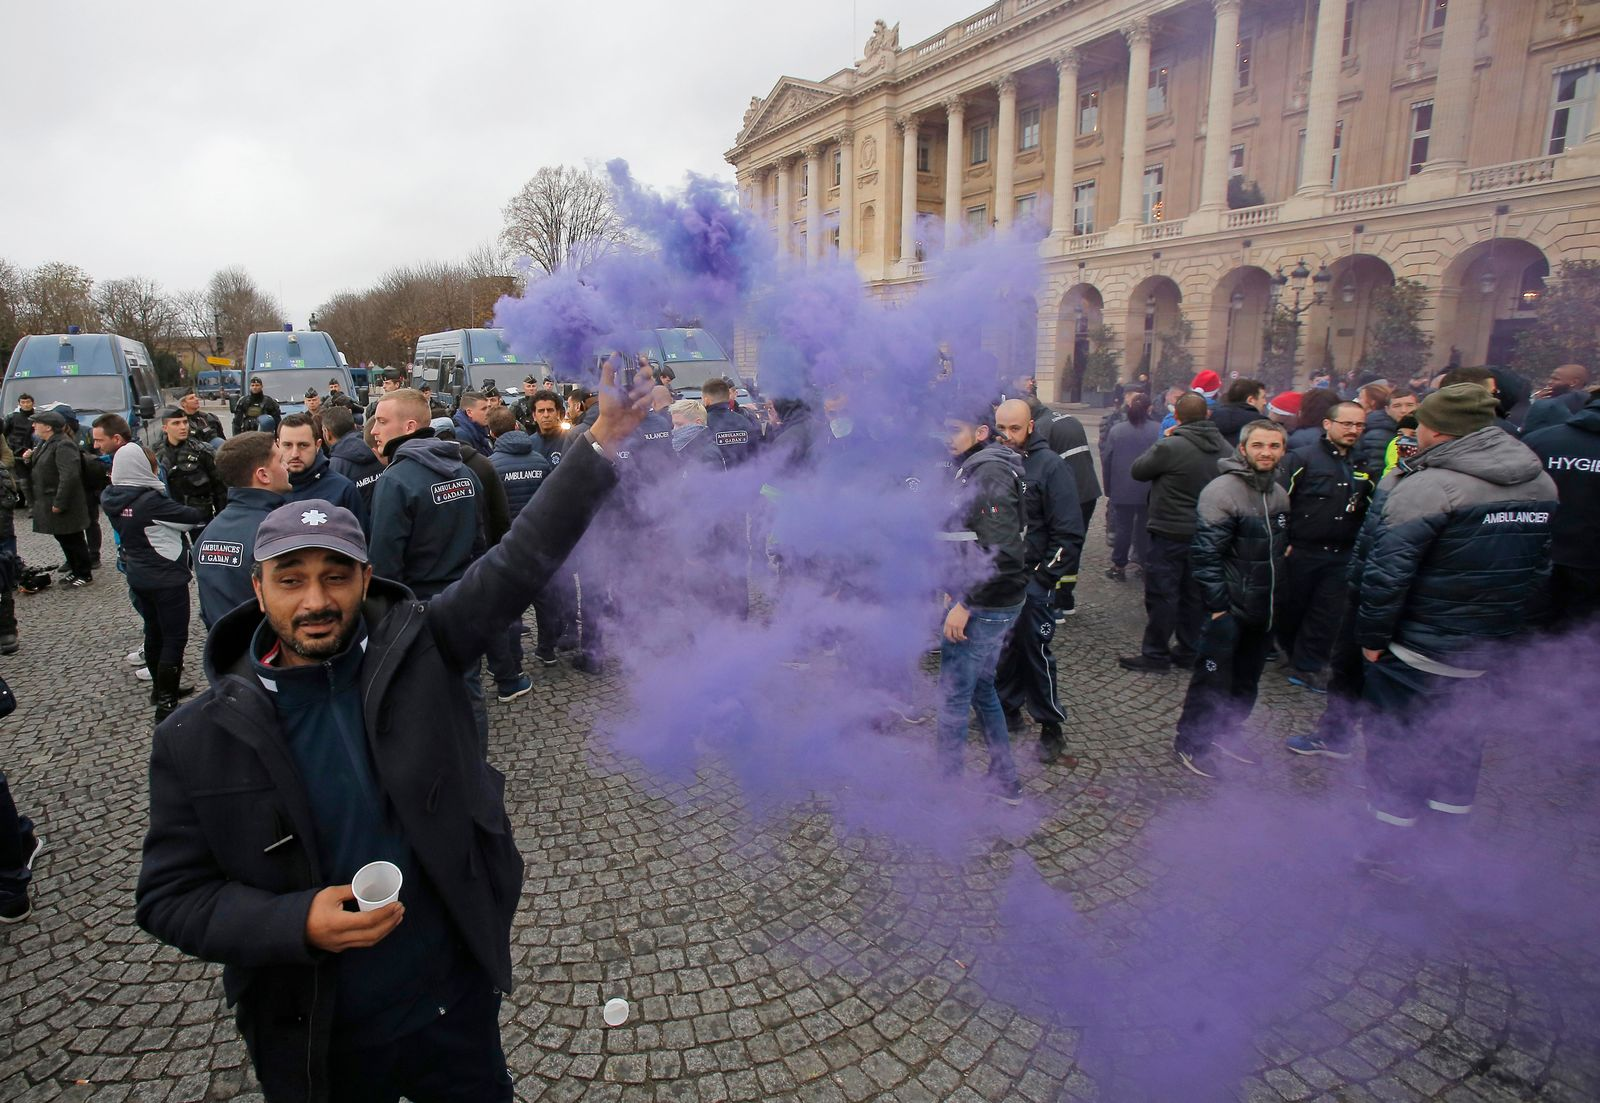 An ambulance worker holds a flare as he and his fellows block the Place de la Concorde in Paris, Monday, Dec. 3, 2018. Ambulance workers took to the streets and gathered close to the National Assembly in downtown Paris to complain about changes to working conditions as French Prime Minister Edouard Philippe is holding crisis talks with representatives of major political parties in the wake of violent anti-government protests that have rocked Paris. (AP Photo/Michel Euler)